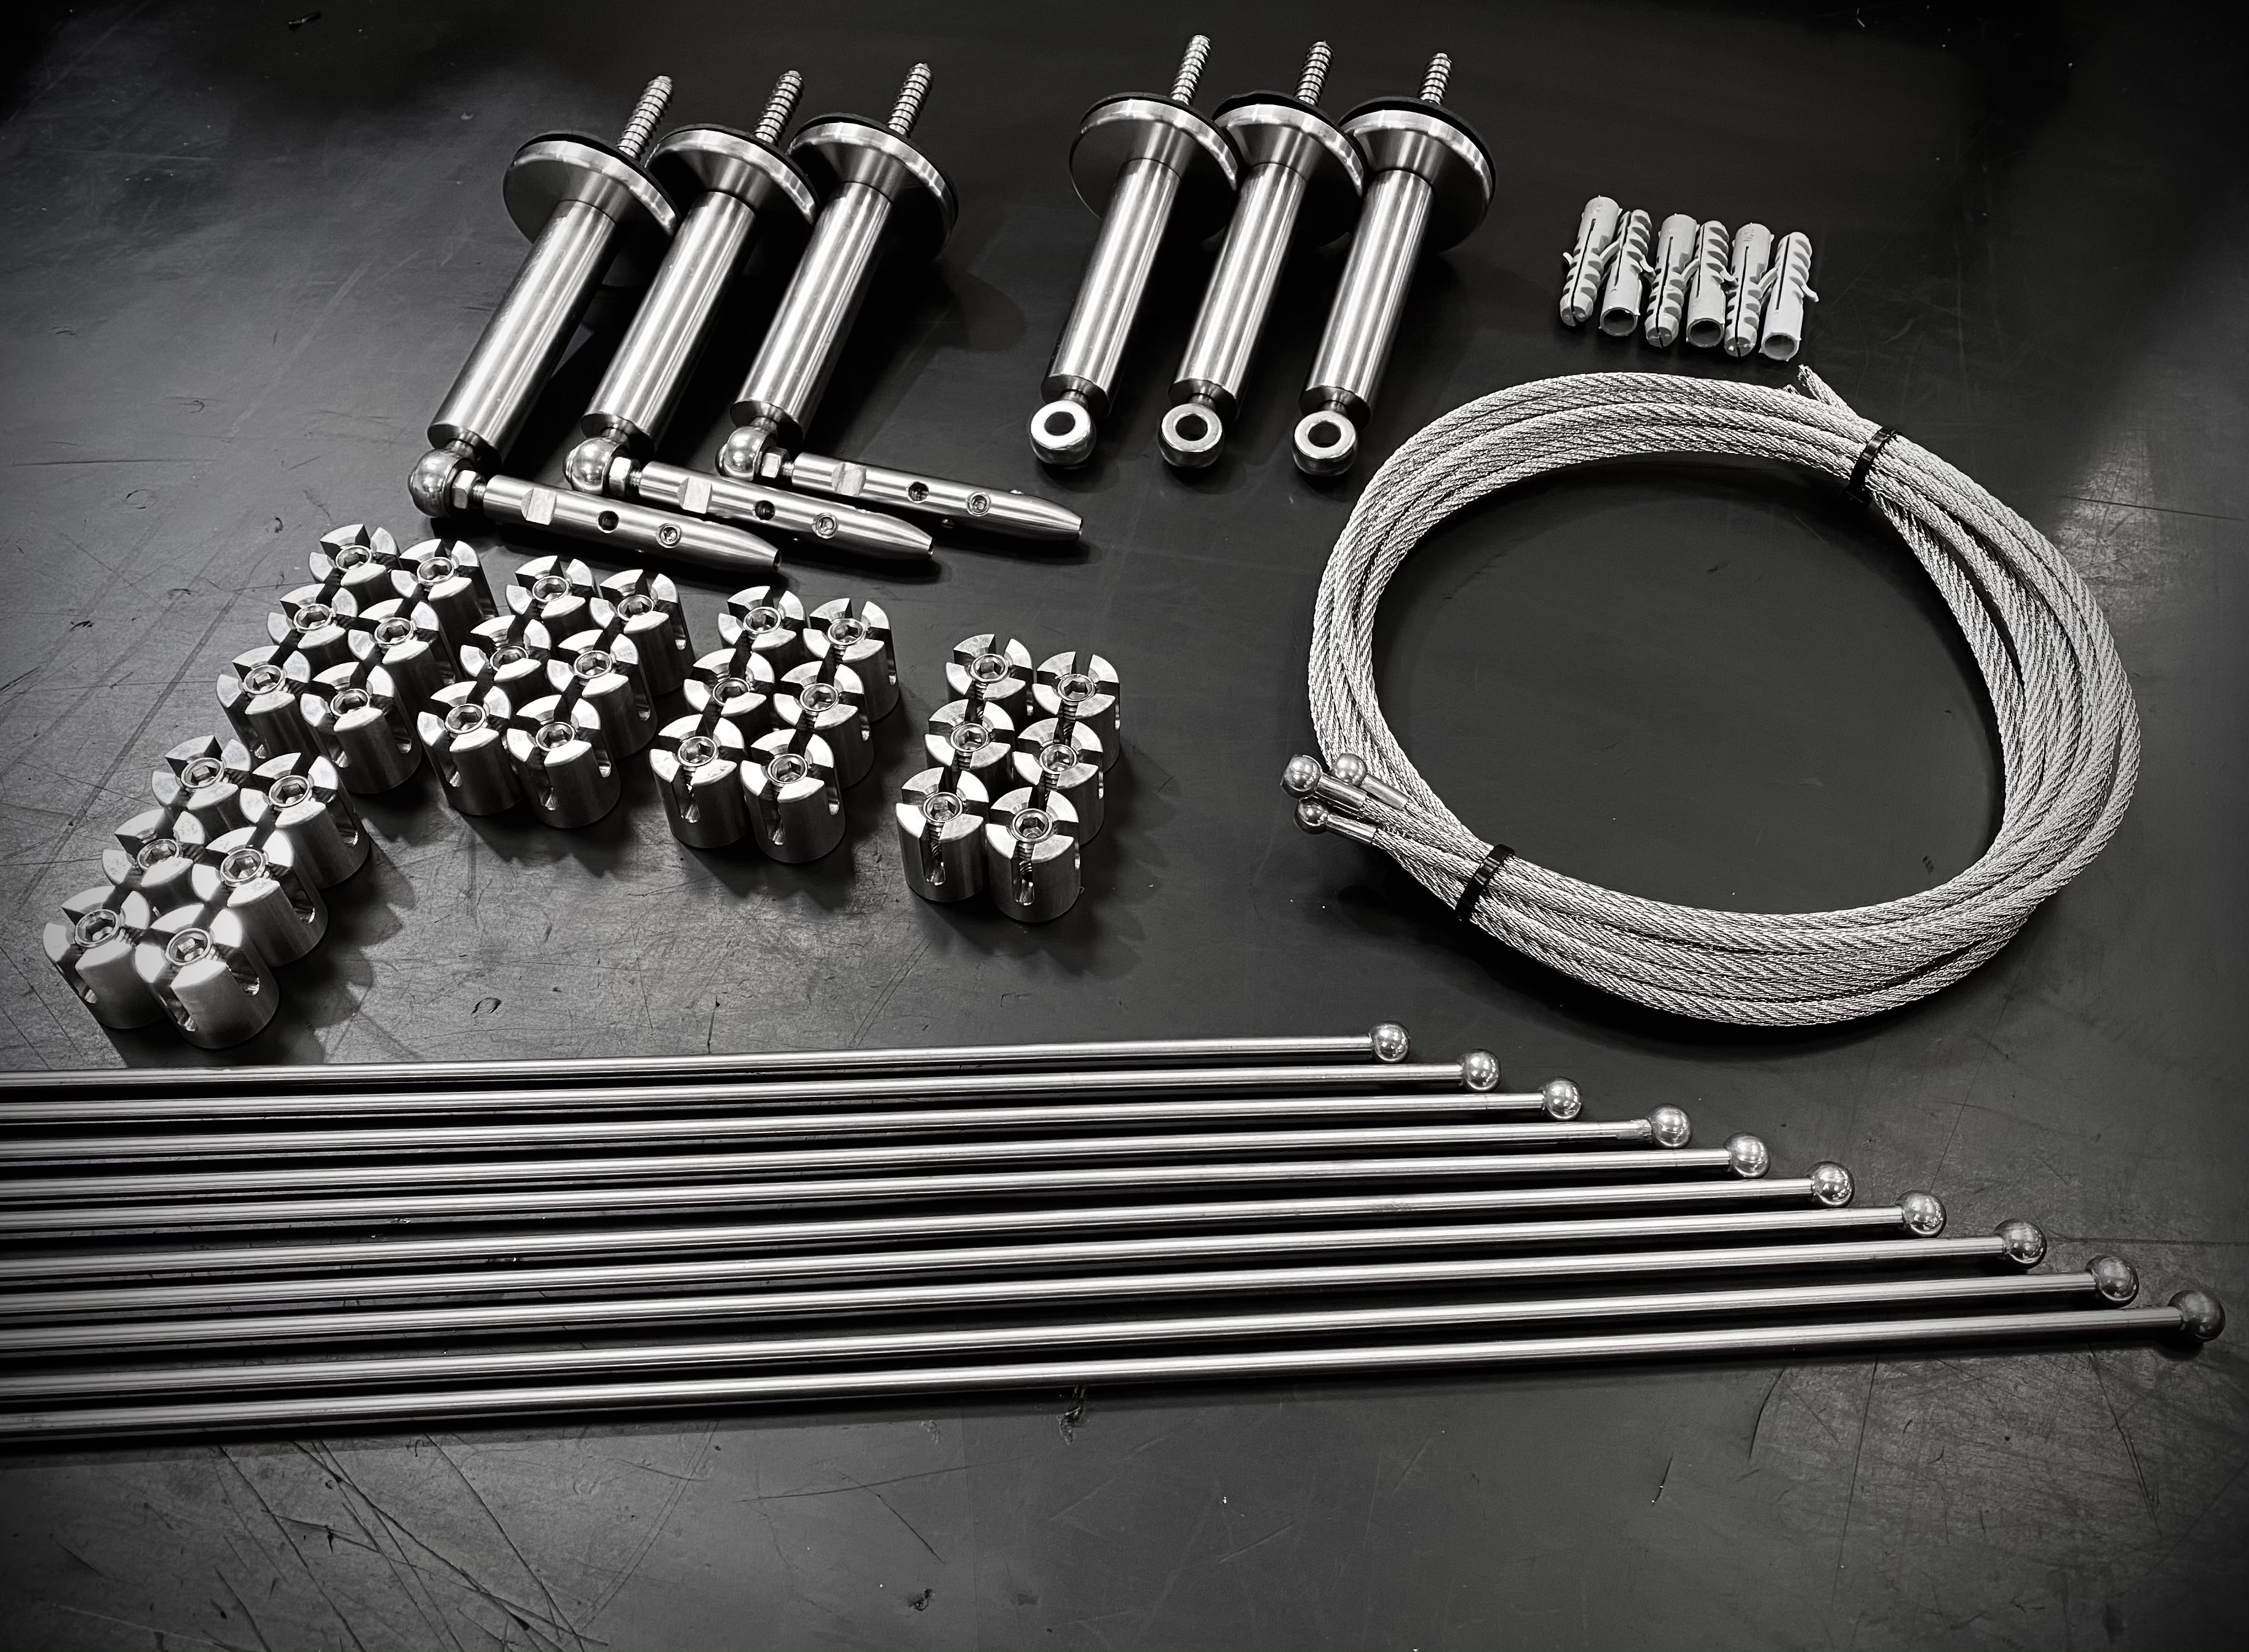 Stainless steel MAX rod trelis components